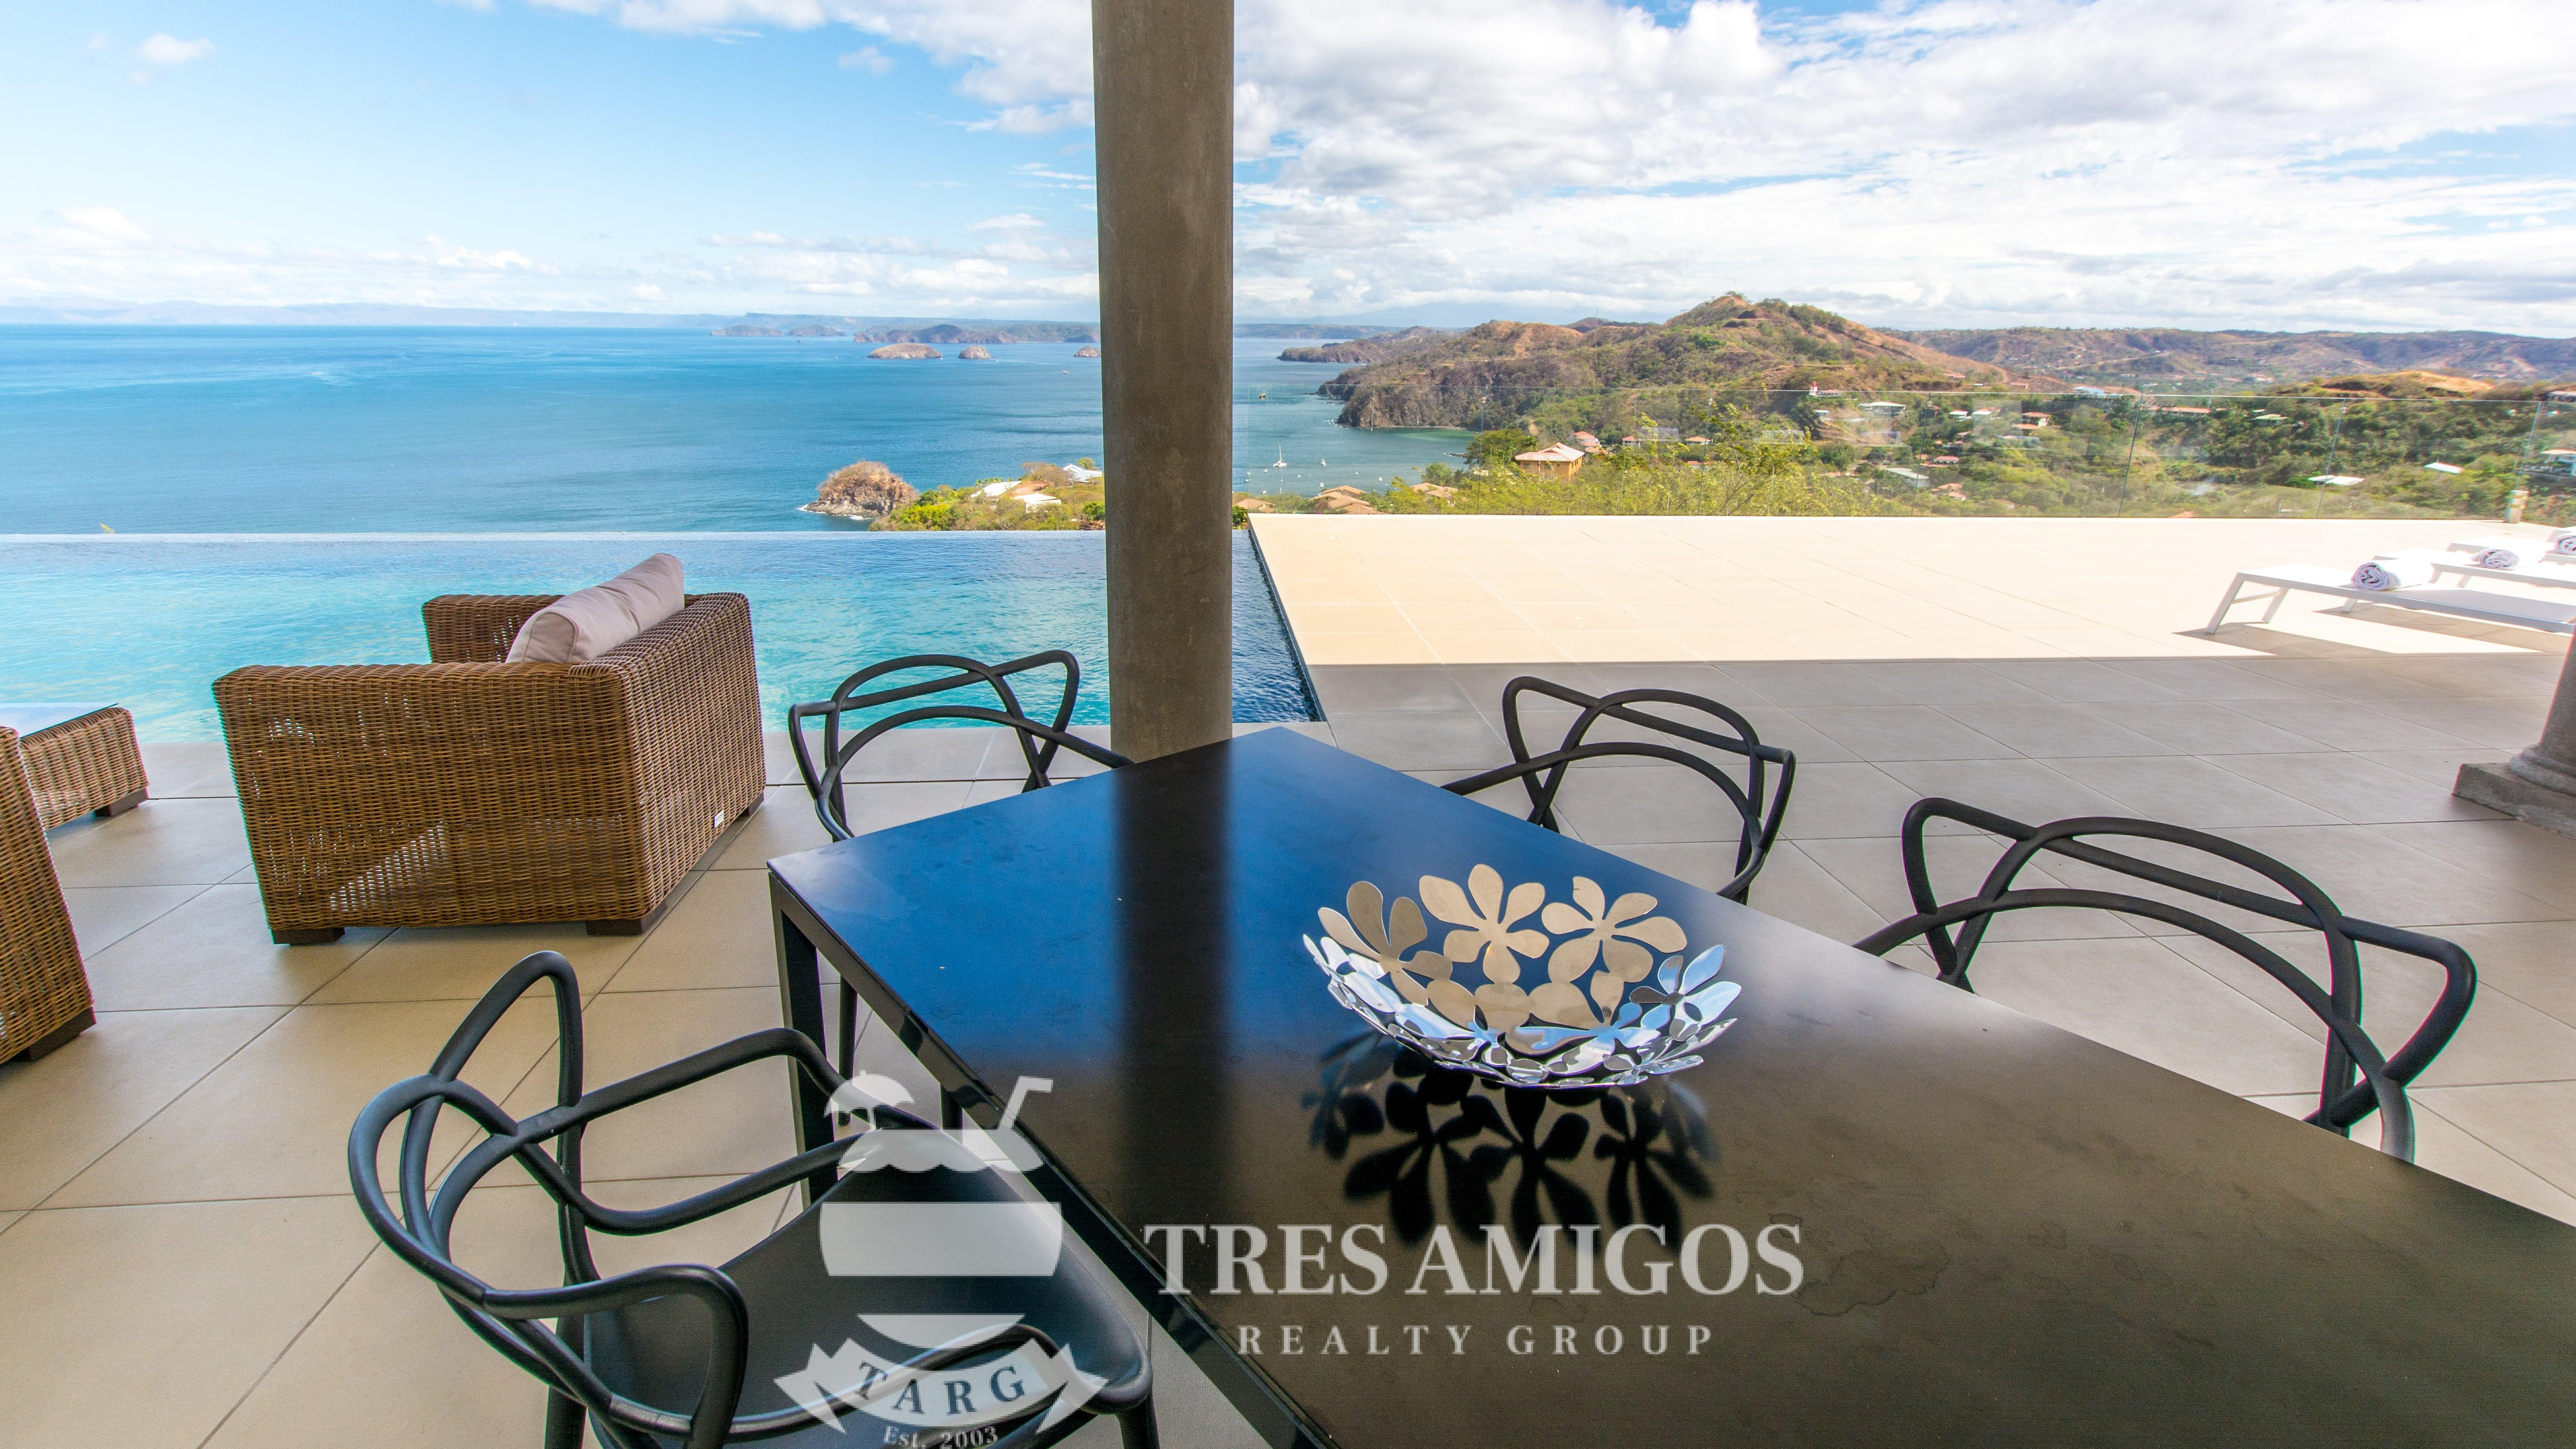 Ocean views from the terrace of the Aguila del Mar luxury Villa in Costa Rica